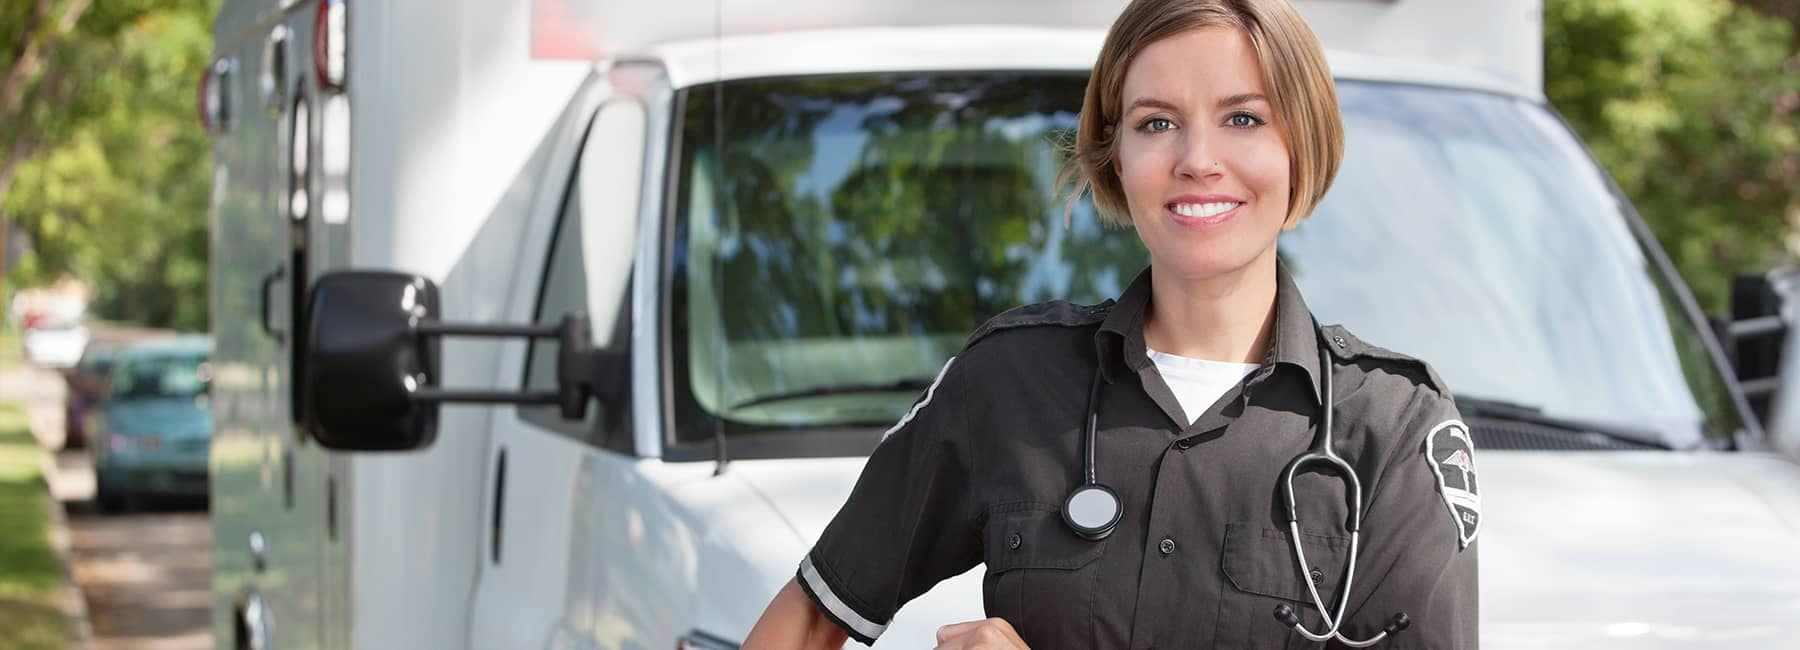 smiling first responder wearing stethoscope stands in front of ambulance